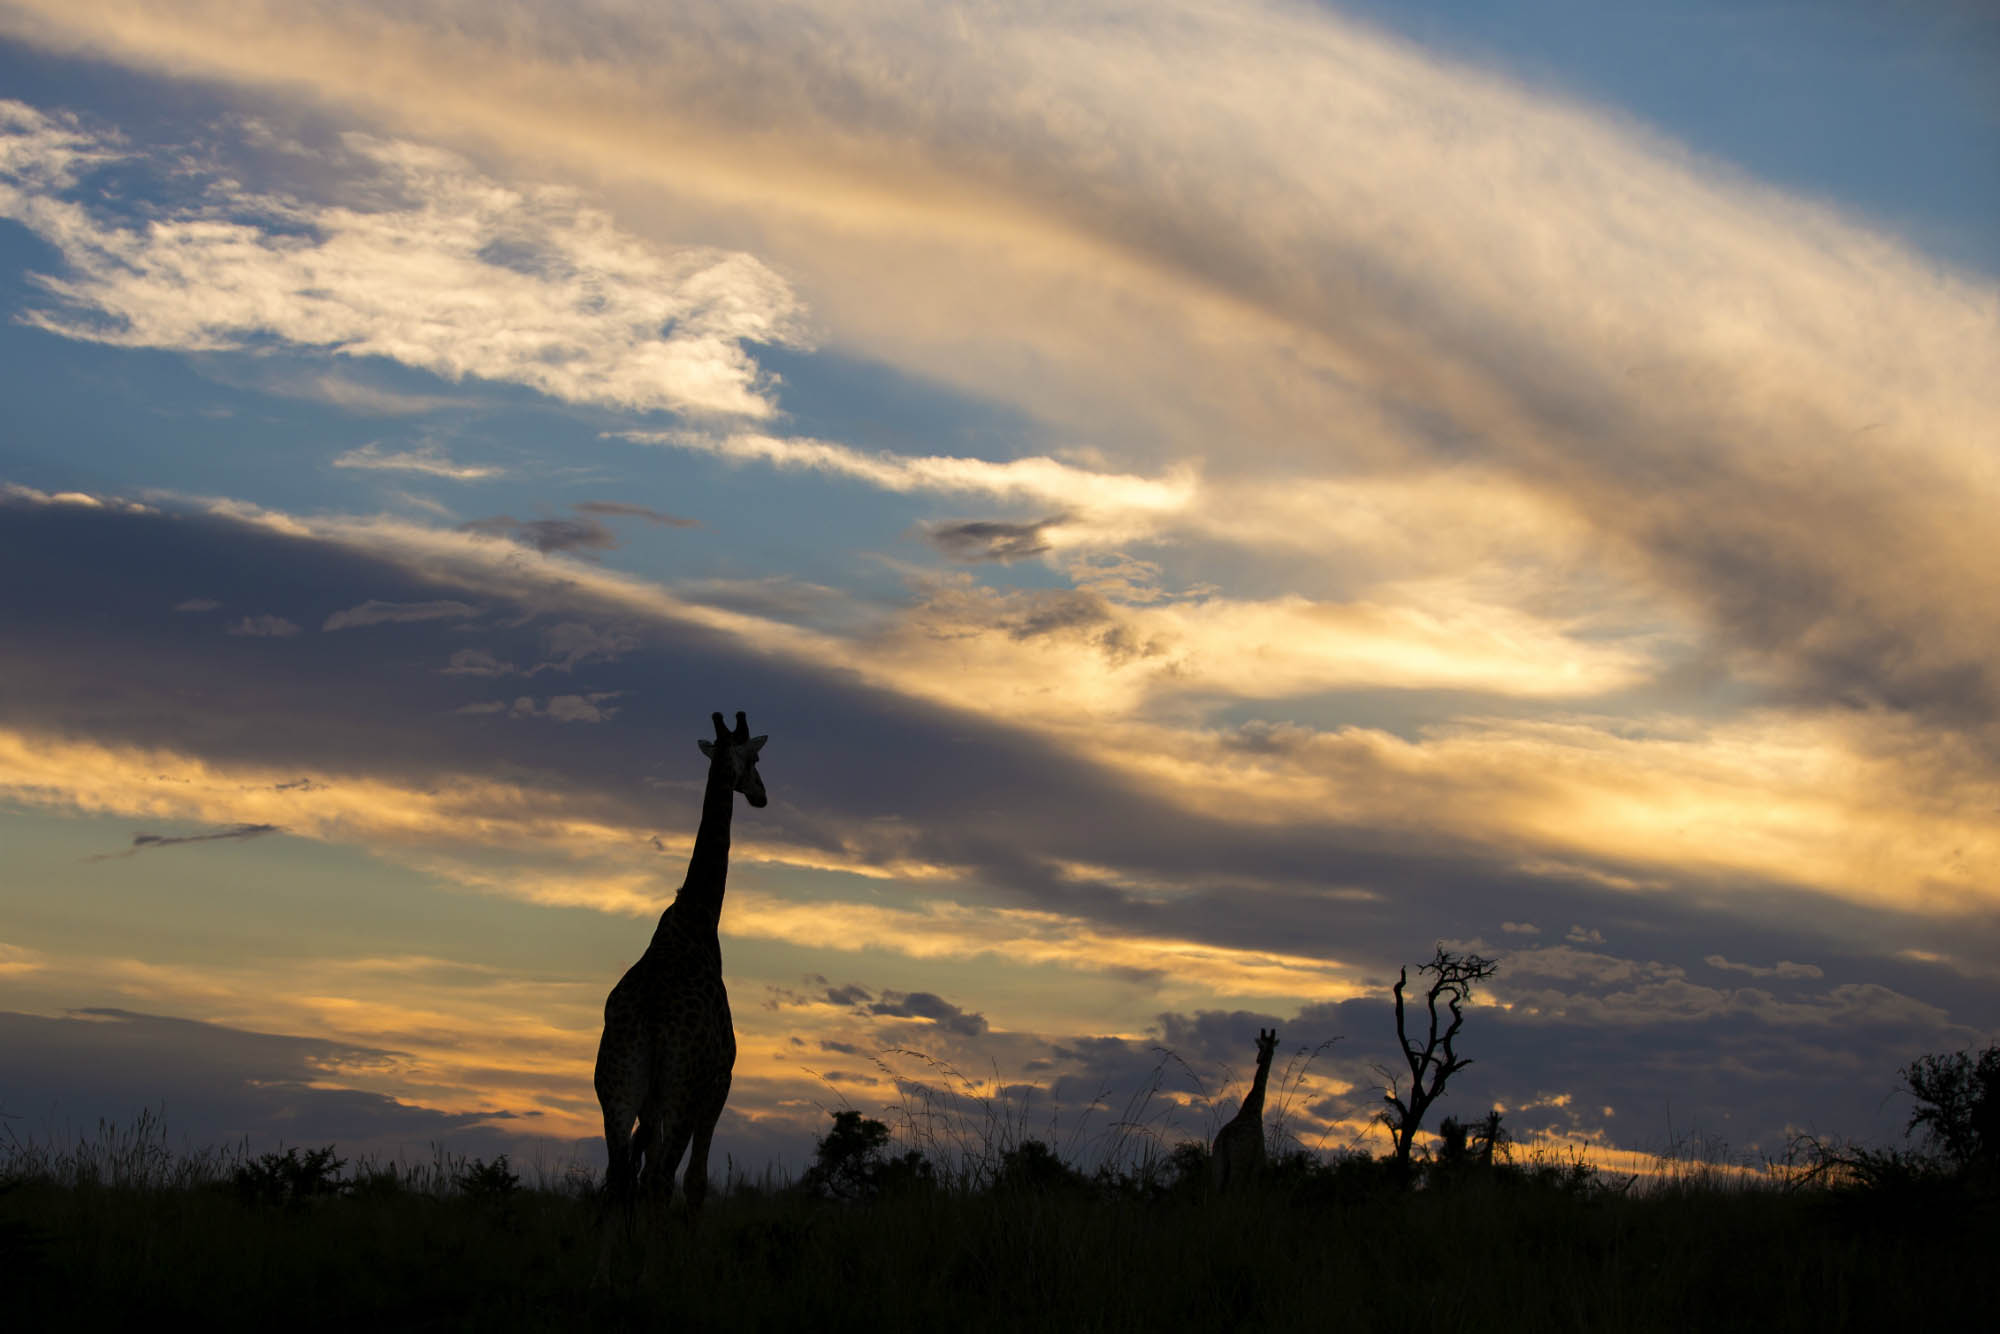 Ndaka safari lodge - giraffe Nambiti big 5 private game reserve